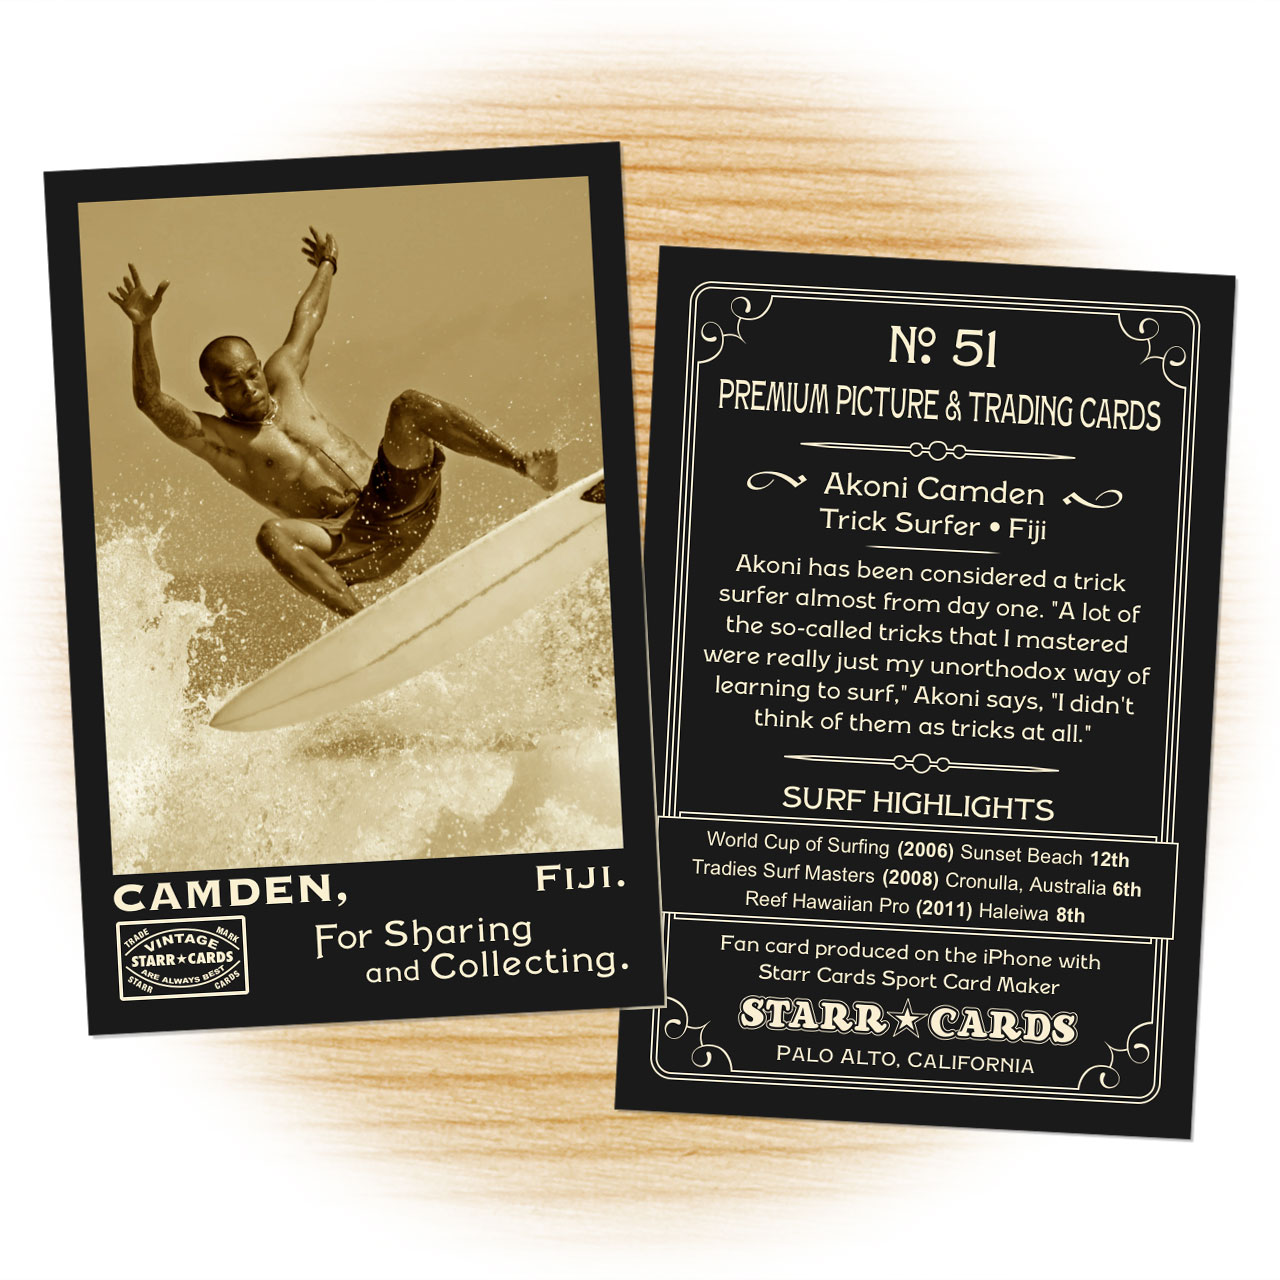 Surfing card template from Starr Cards Surfing Card Maker.